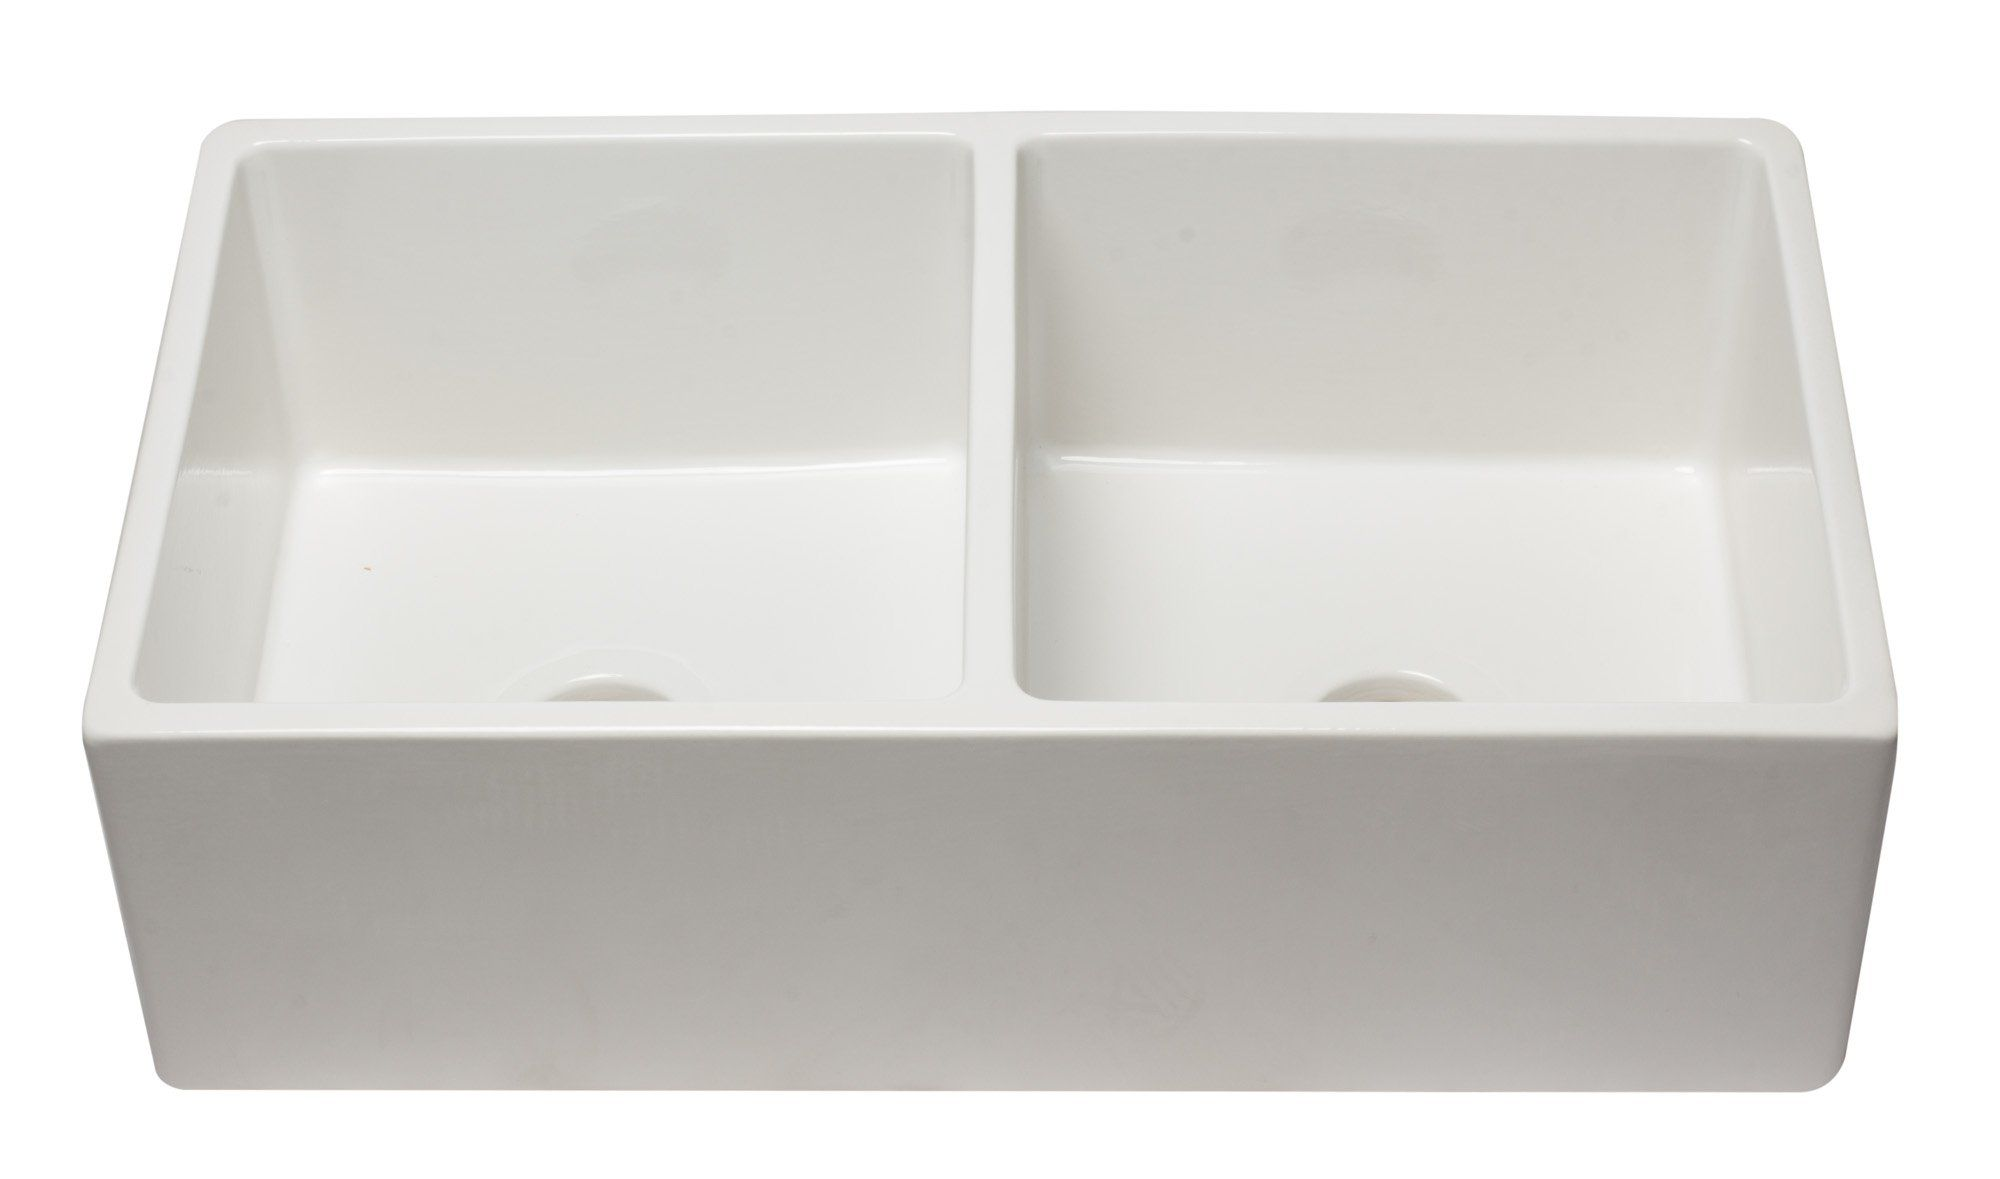 Alfi 33 Double Bowl Fireclay Farmhouse Apron Sink White